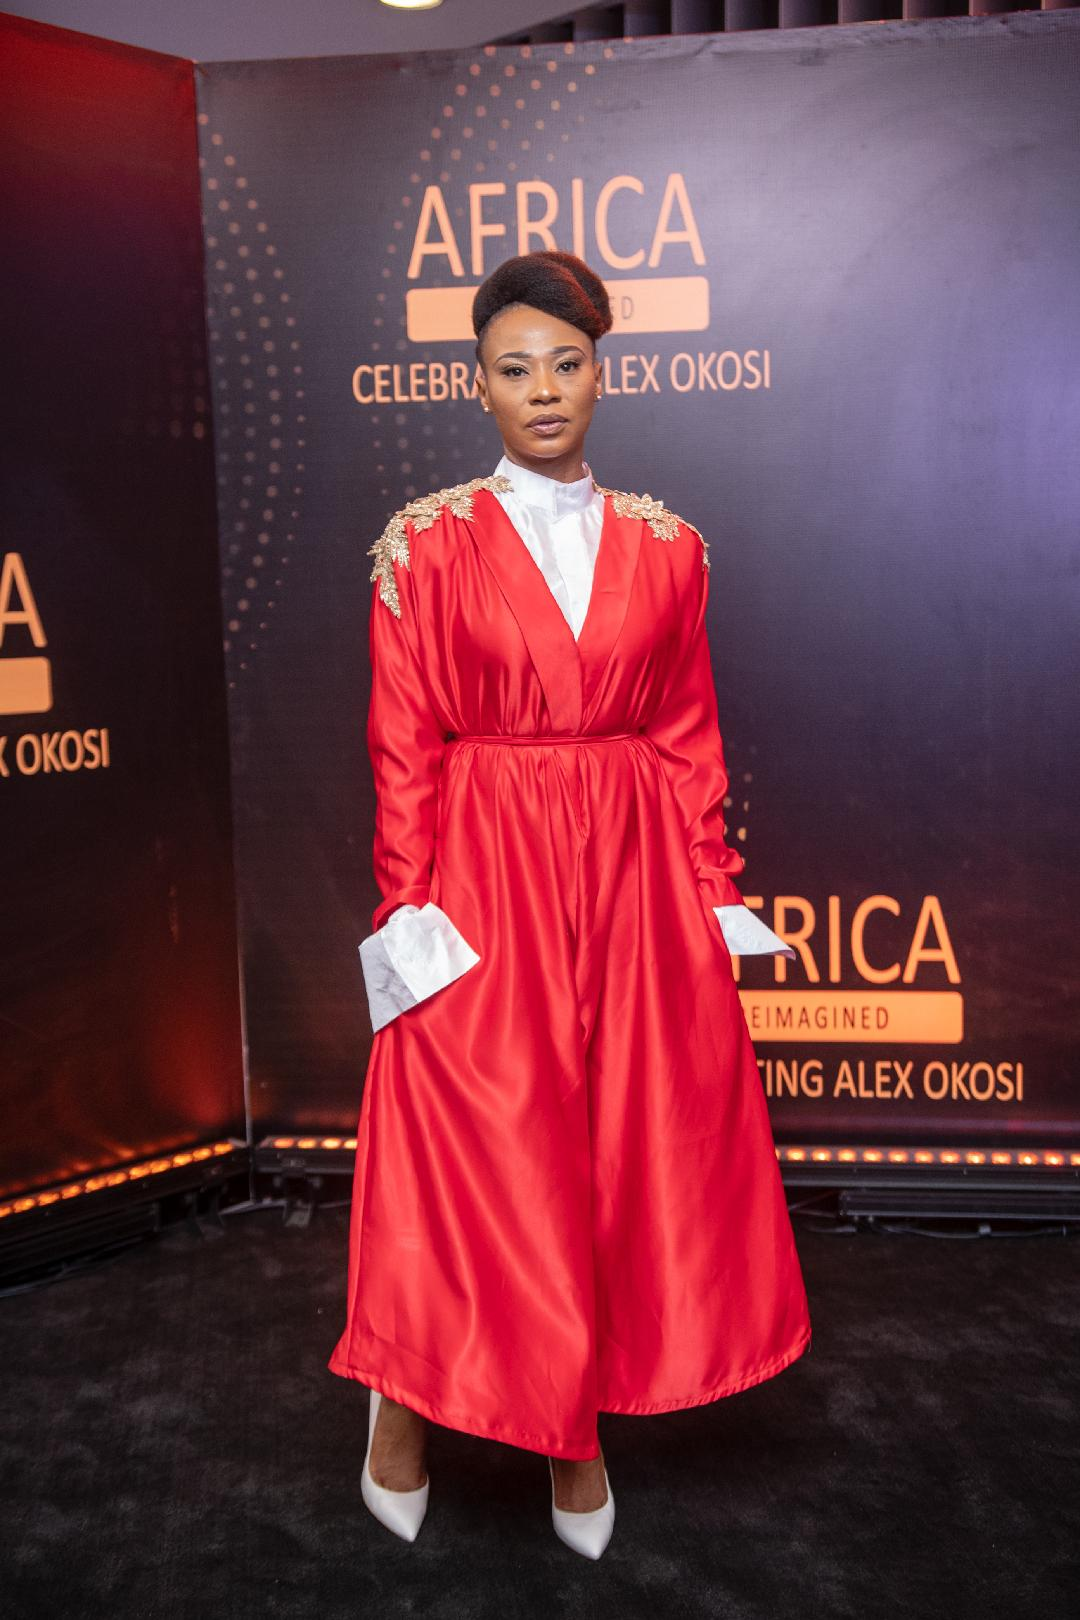 Actress Nse Ikpe-Etim 2020 Steps Out In Style For Alex Okosi's Party